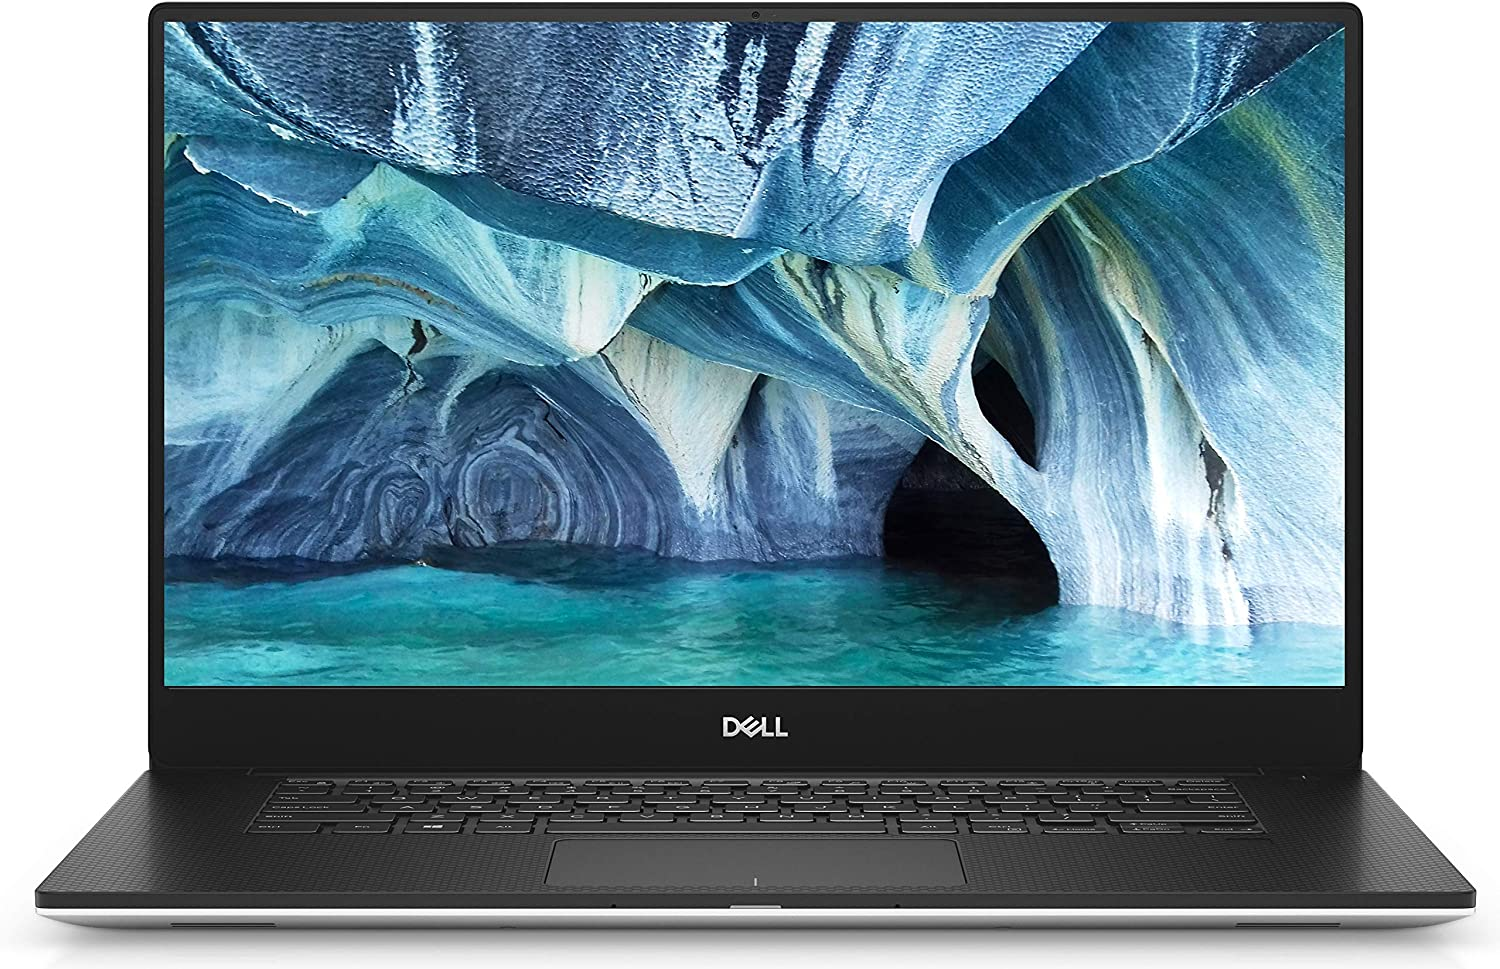 Dell XPS 15 7590 Laptop 15.6 inch, FHD InfinityEdge, 9th Gen Intel Core i7-9750H, NVIDIA GeForce GTX 1650 GDDR5, 512GB SSD, 8GB RAM, Windows 10 Home, XPS7590-7541SLV-PUS